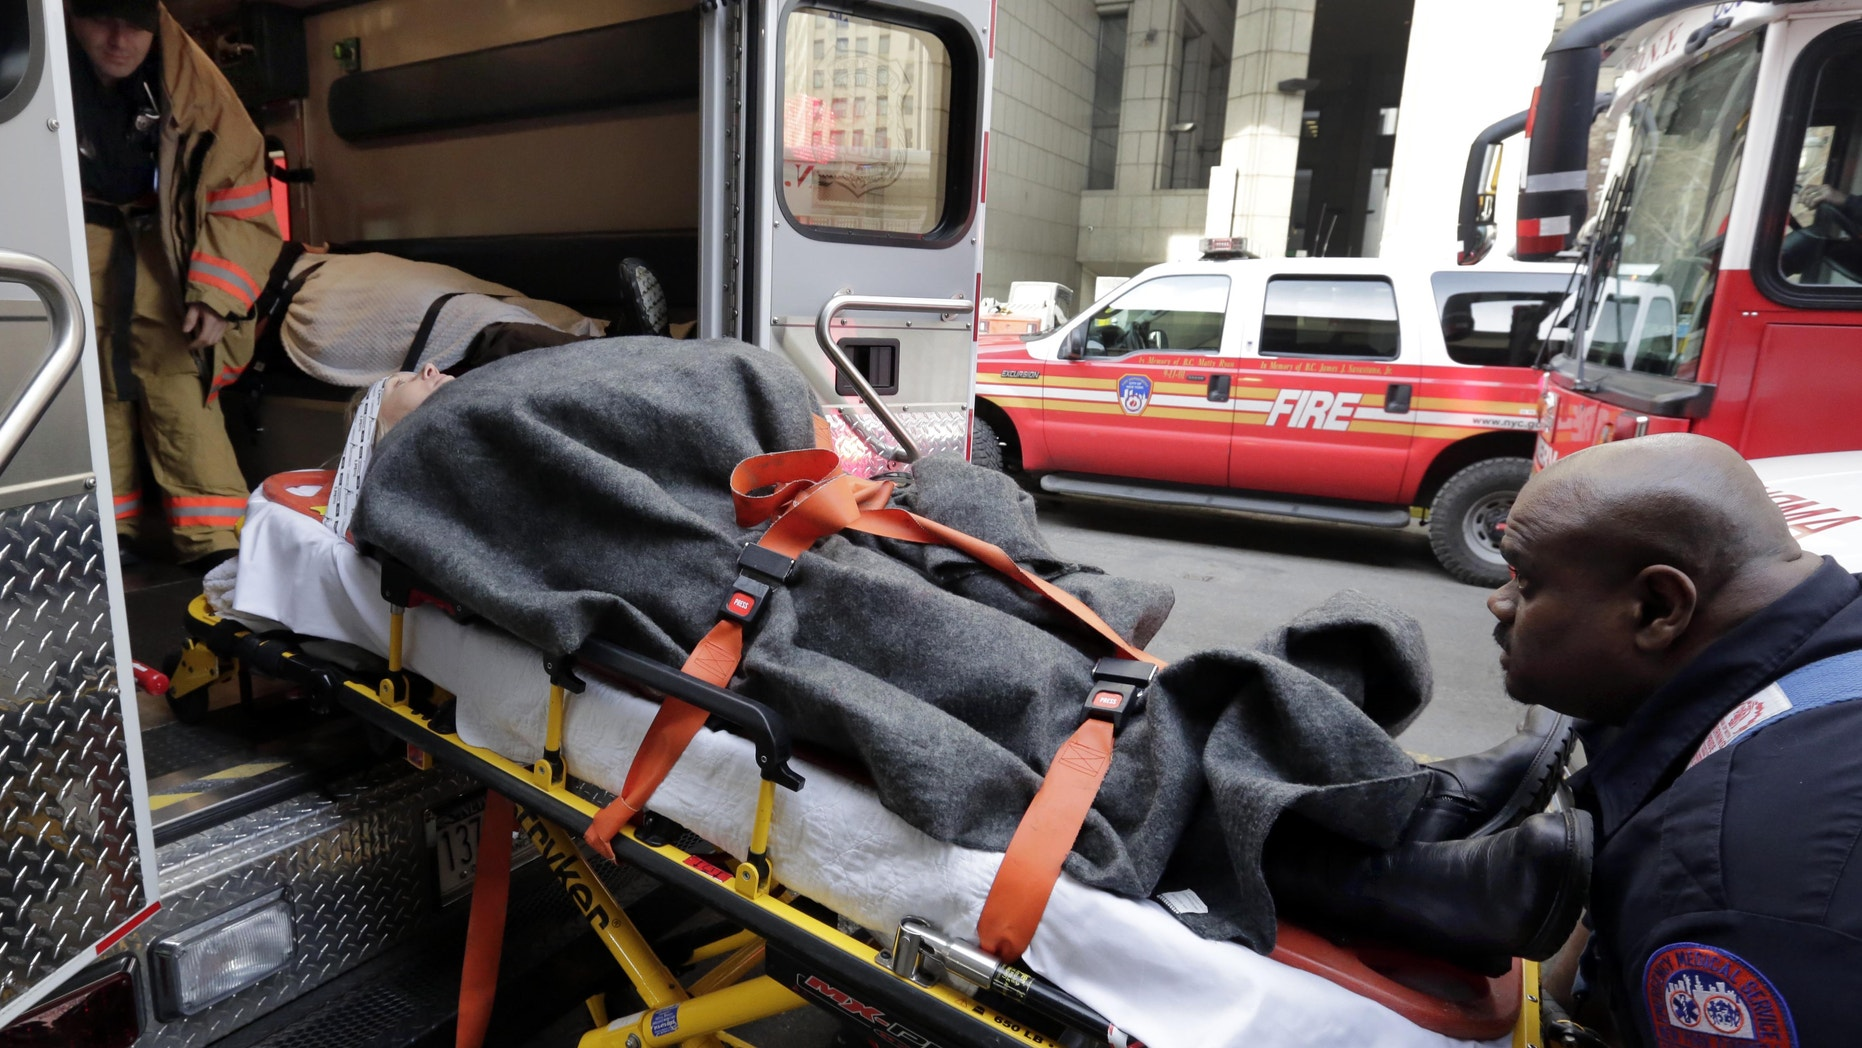 Jan. 9, 2013: An injured passenger of a New Jersey ferry is loaded into an ambulance, in New York.